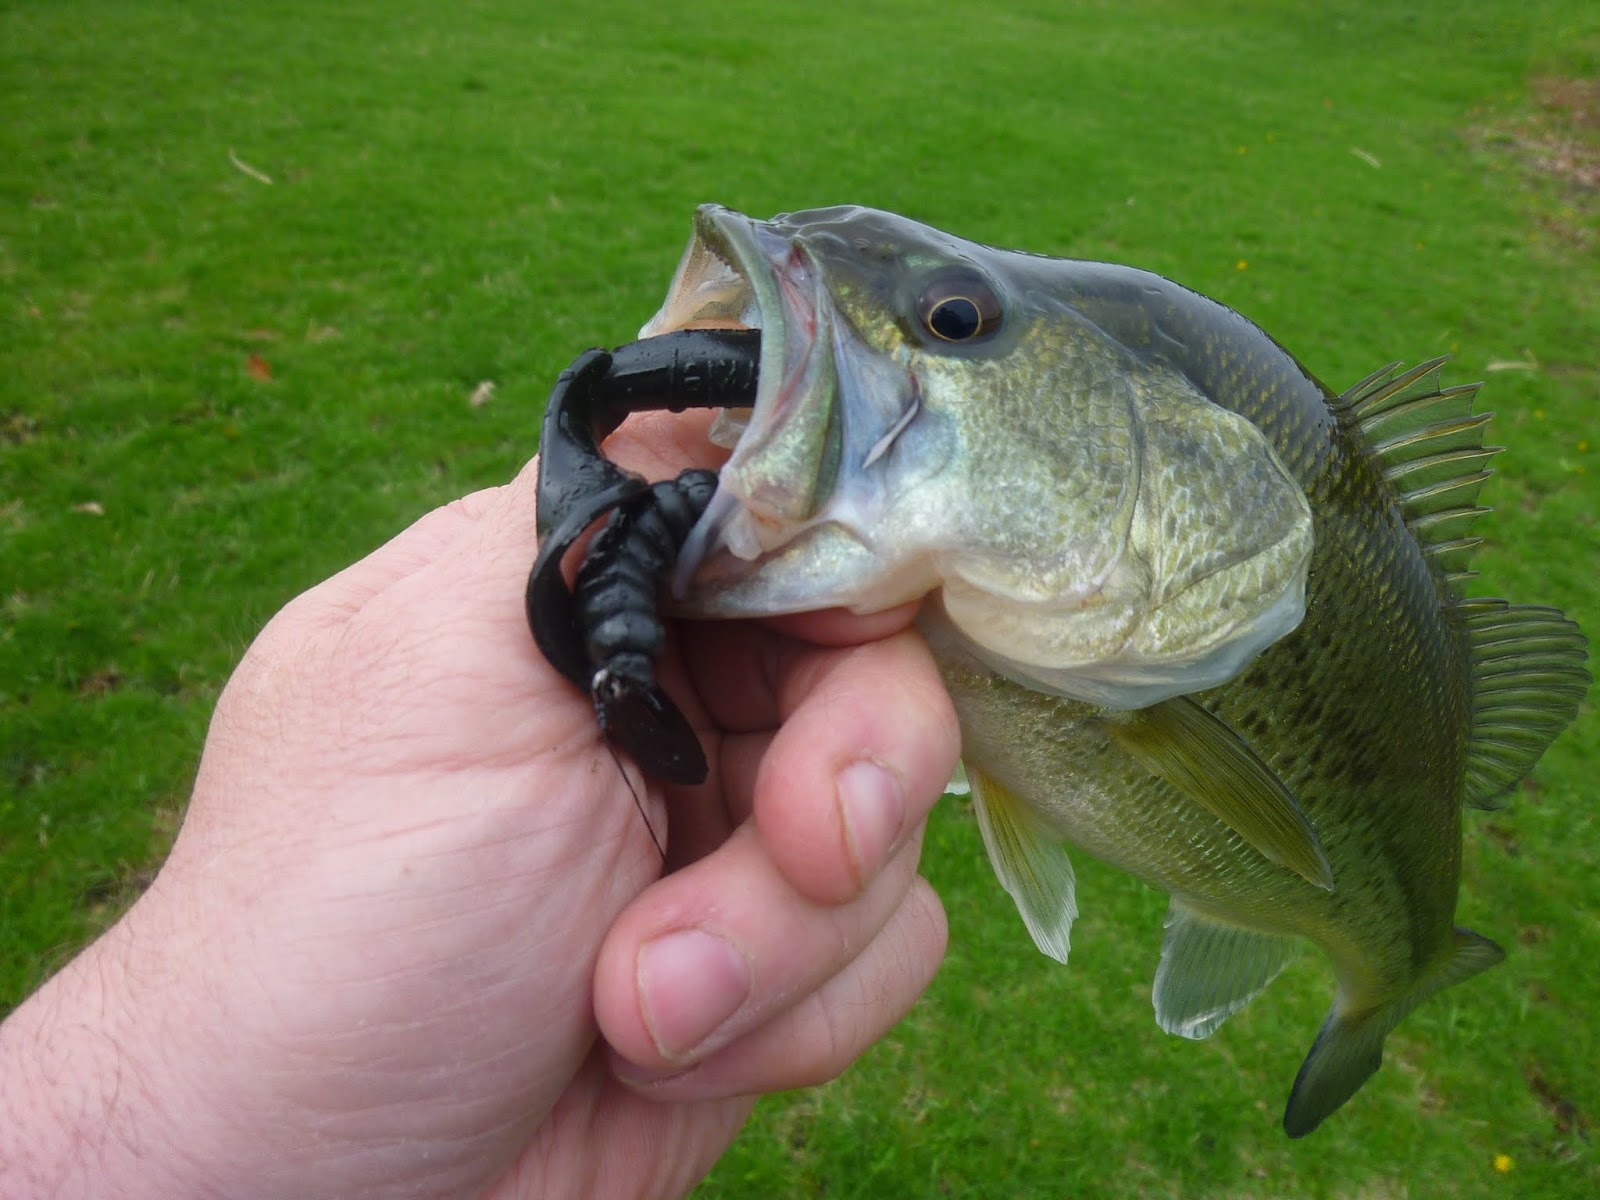 Darkstar72 39 s fishing blog wading before pond hopping for Where can i buy worms for fishing near me